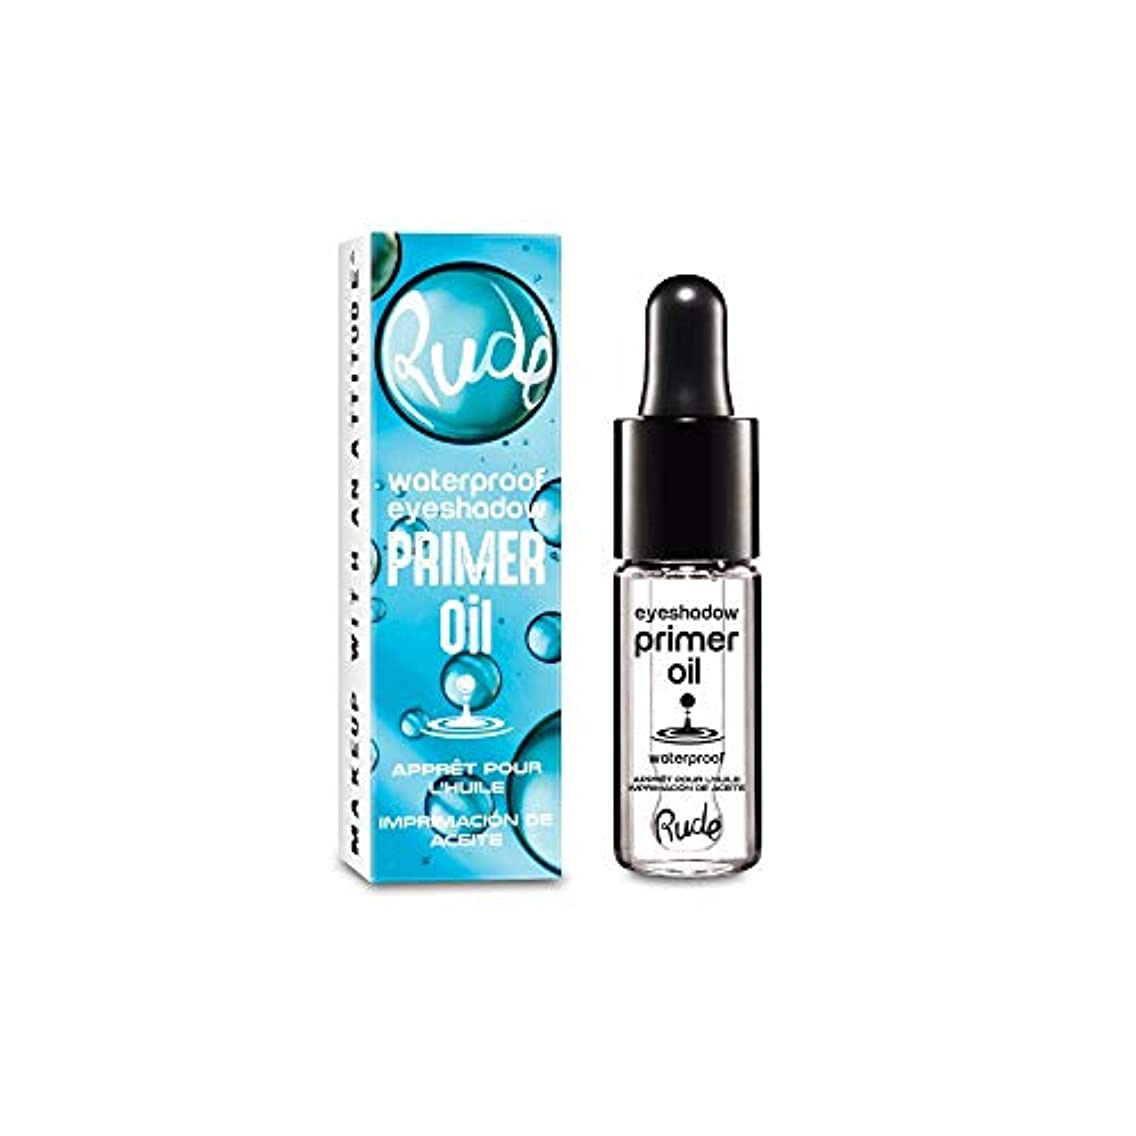 (6 Pack) RUDE Waterproof Eyeshadow Primer Oil (並行輸入品)